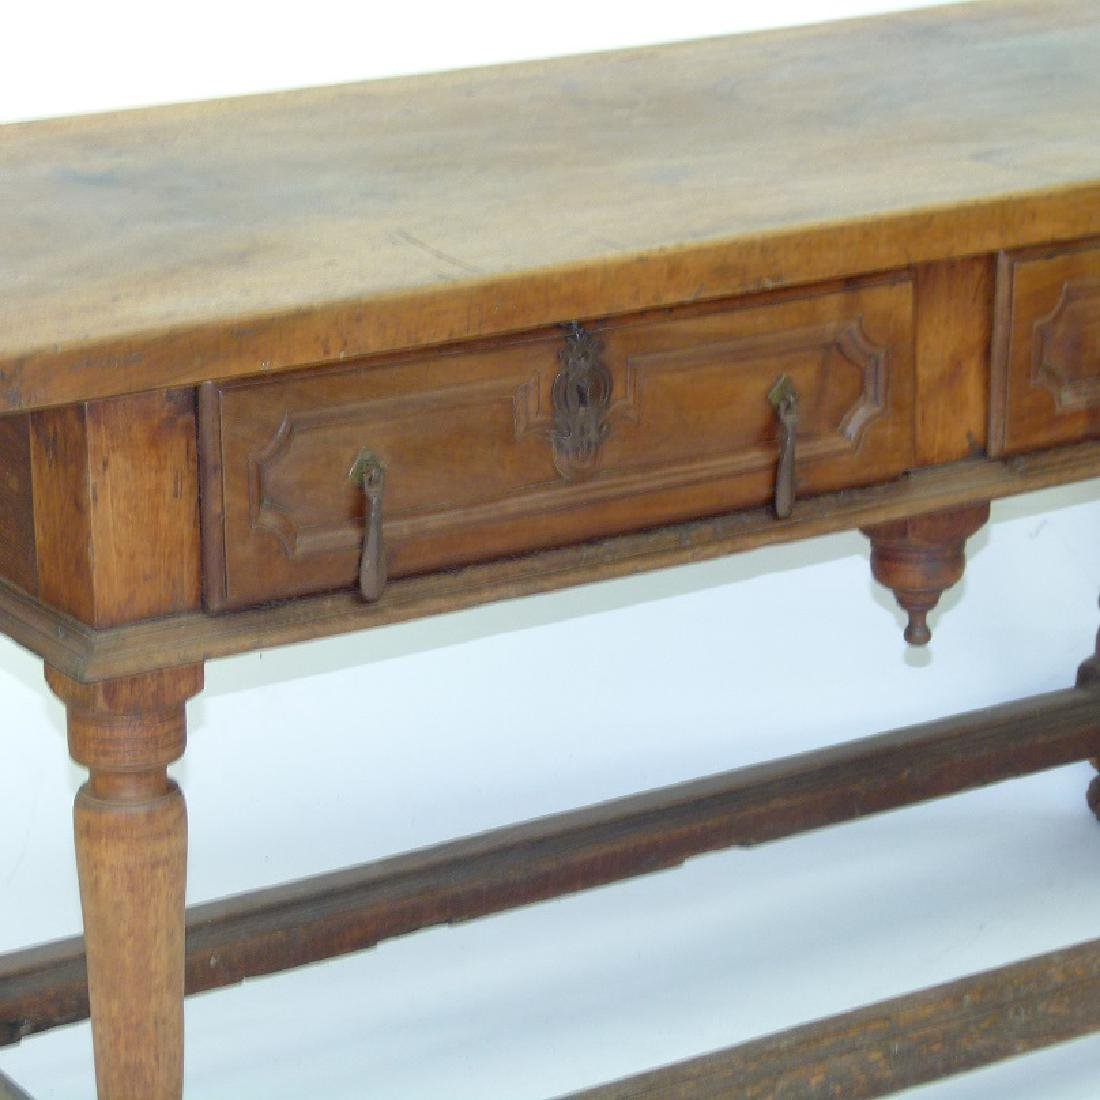 SPANISH COLONIAL TWO DRAWER SIDE TABLE, 17TH C. - 3